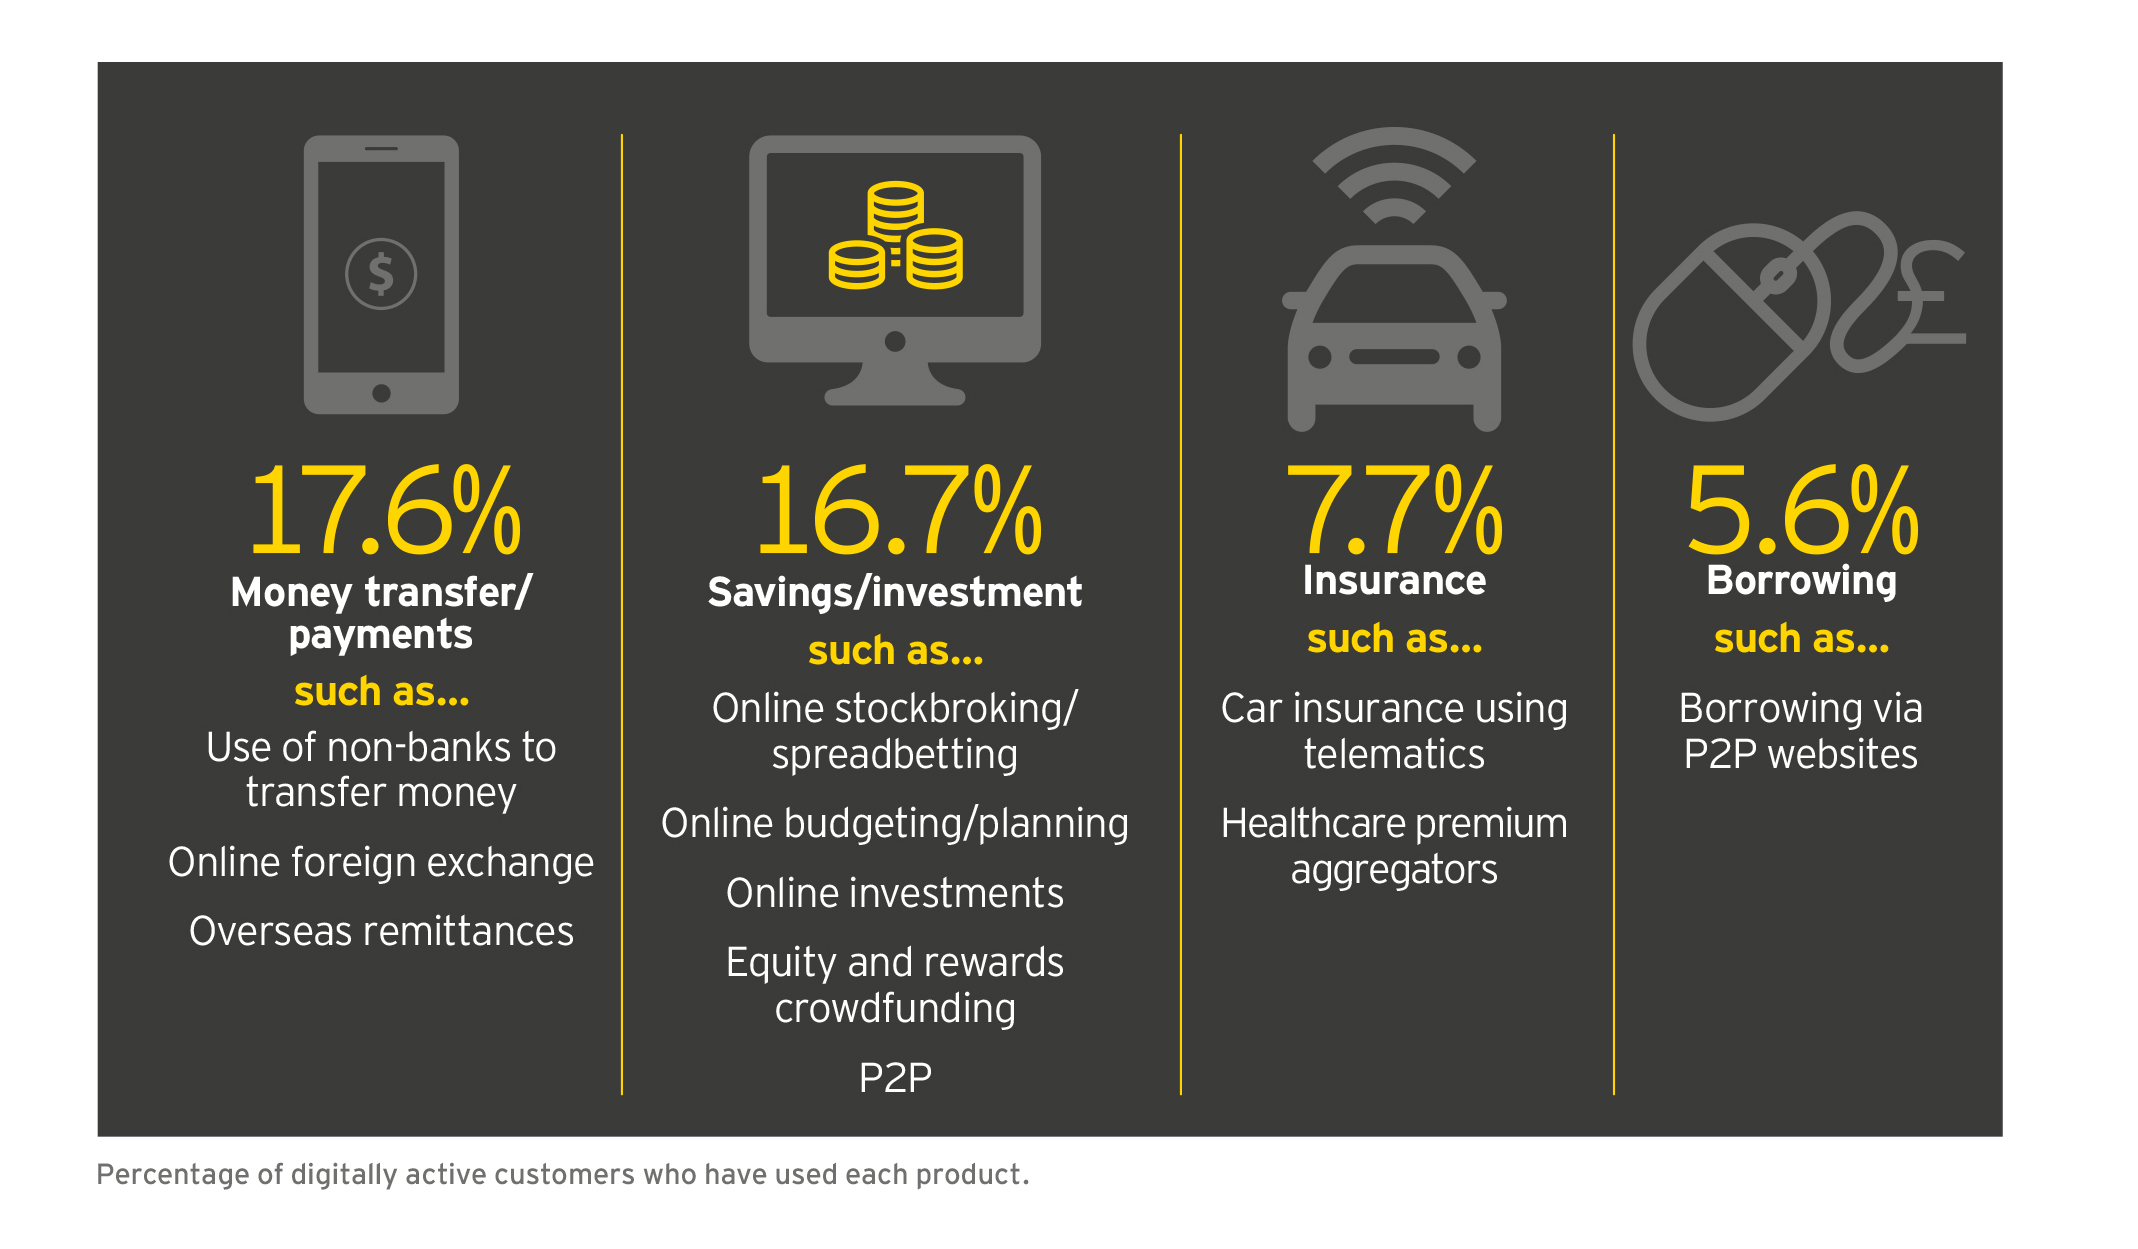 ey-most-used-fintech-services